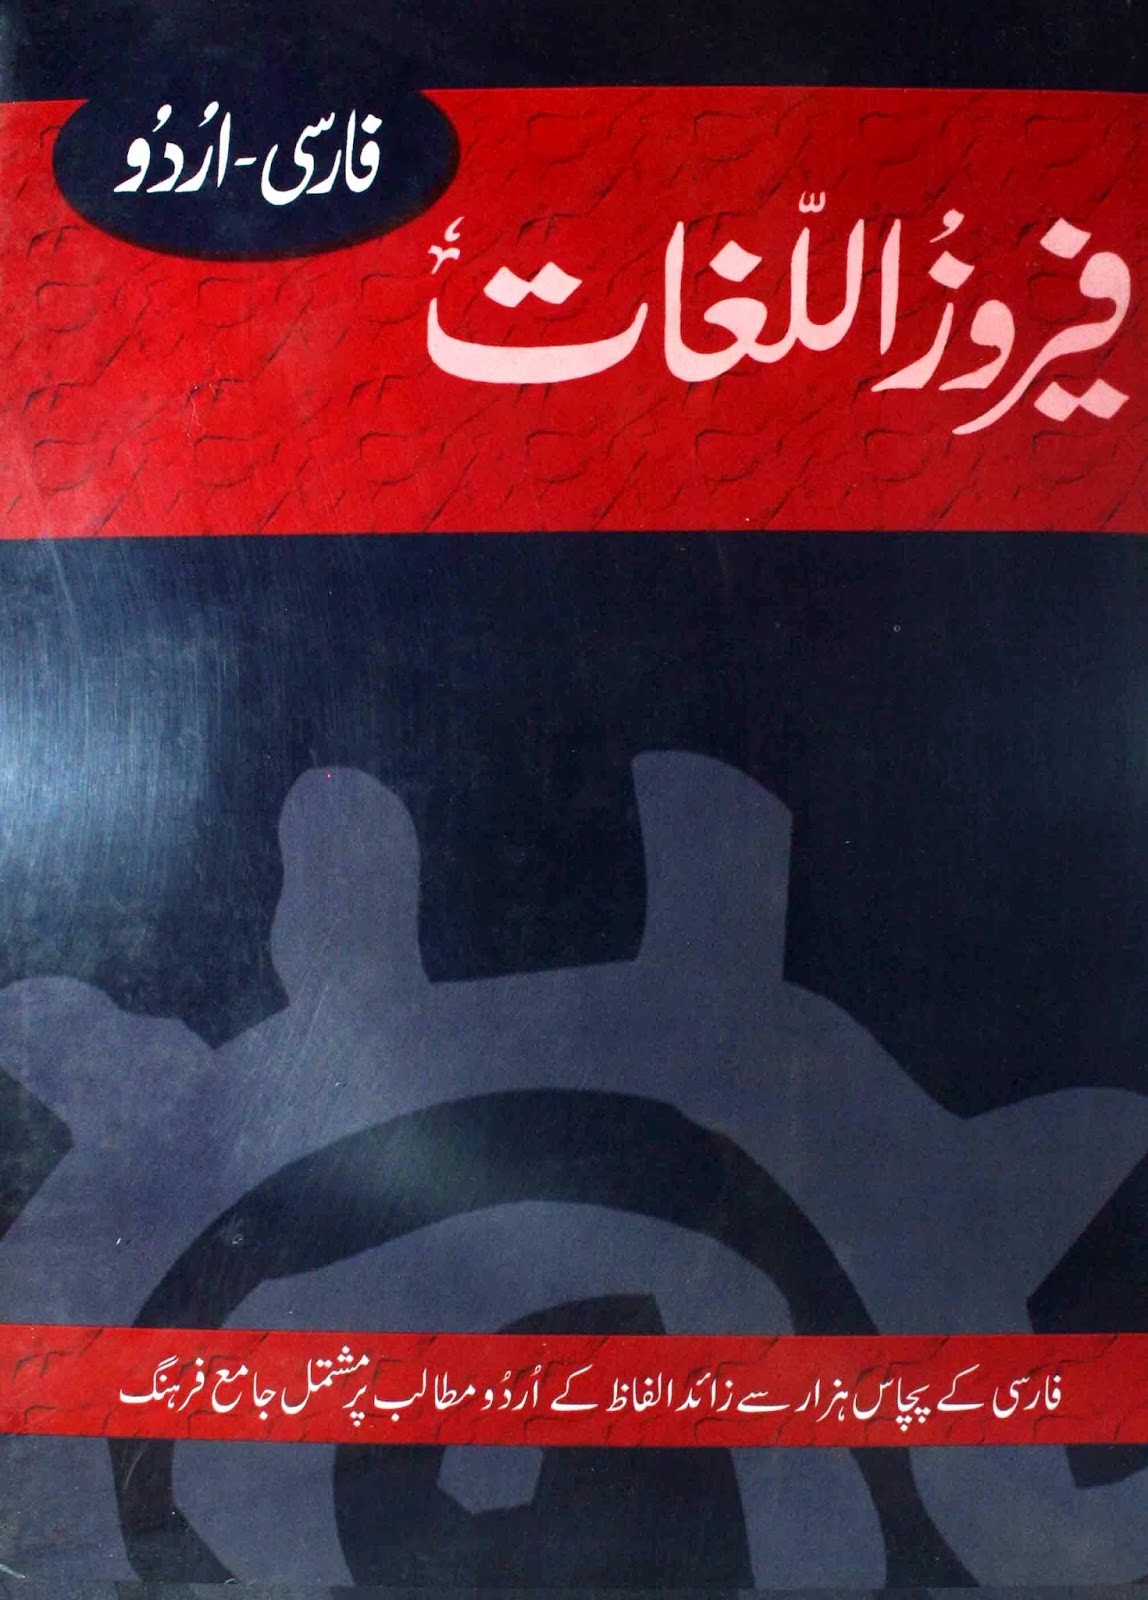 Feroz ul lughat new edition 4 volumes complete pdf free download.